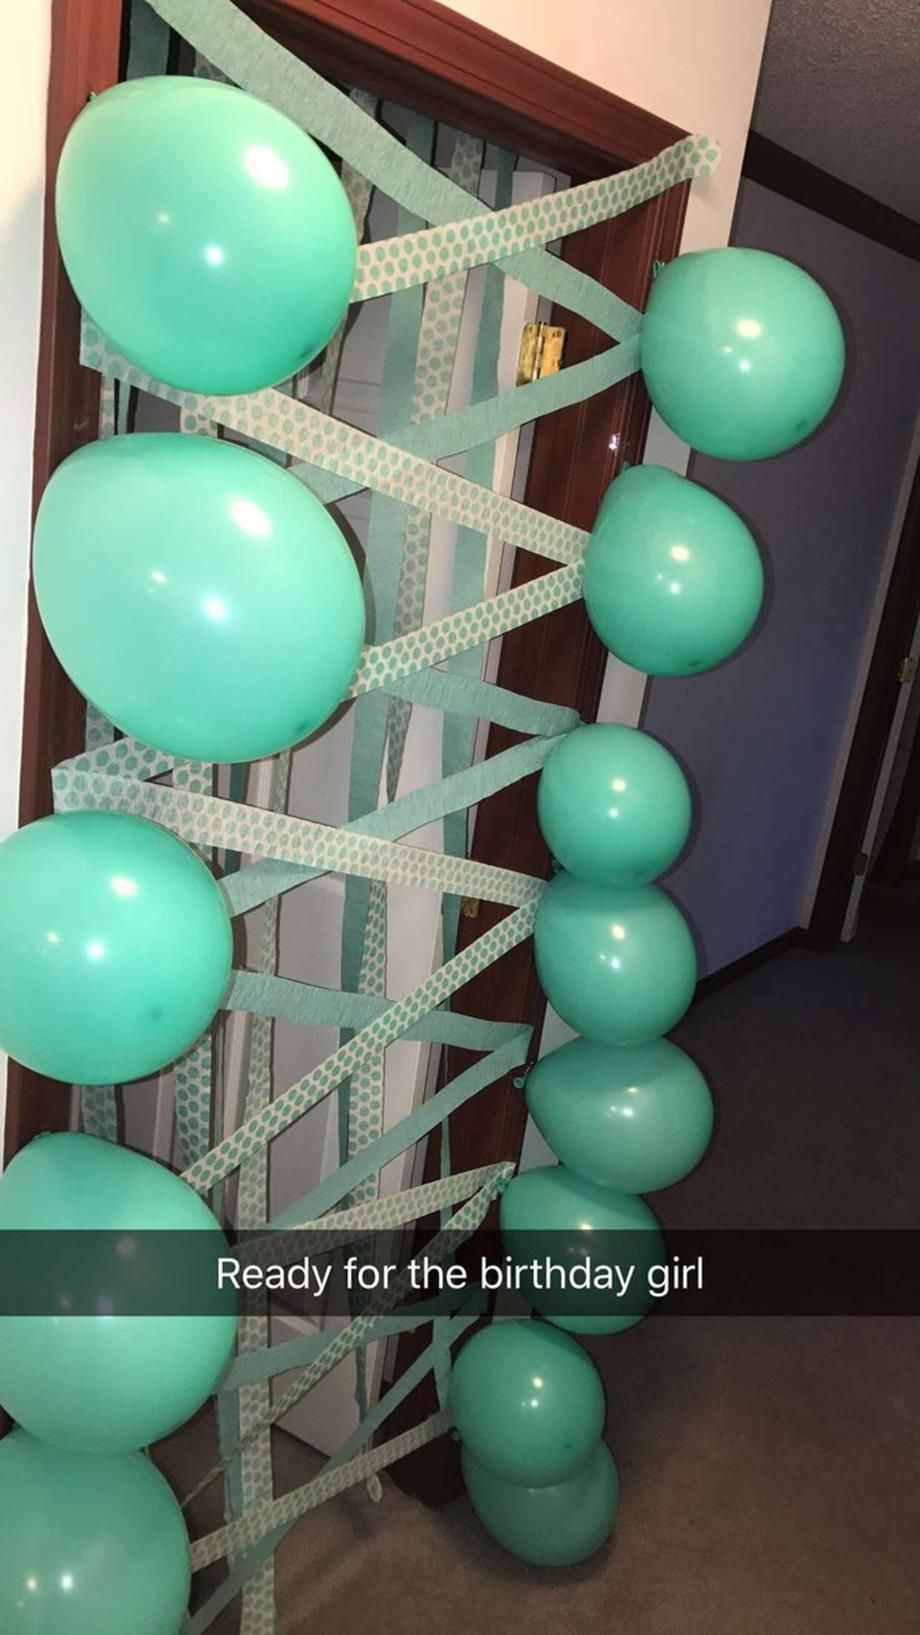 Decorating Ideas Birthday Surprise 30 images